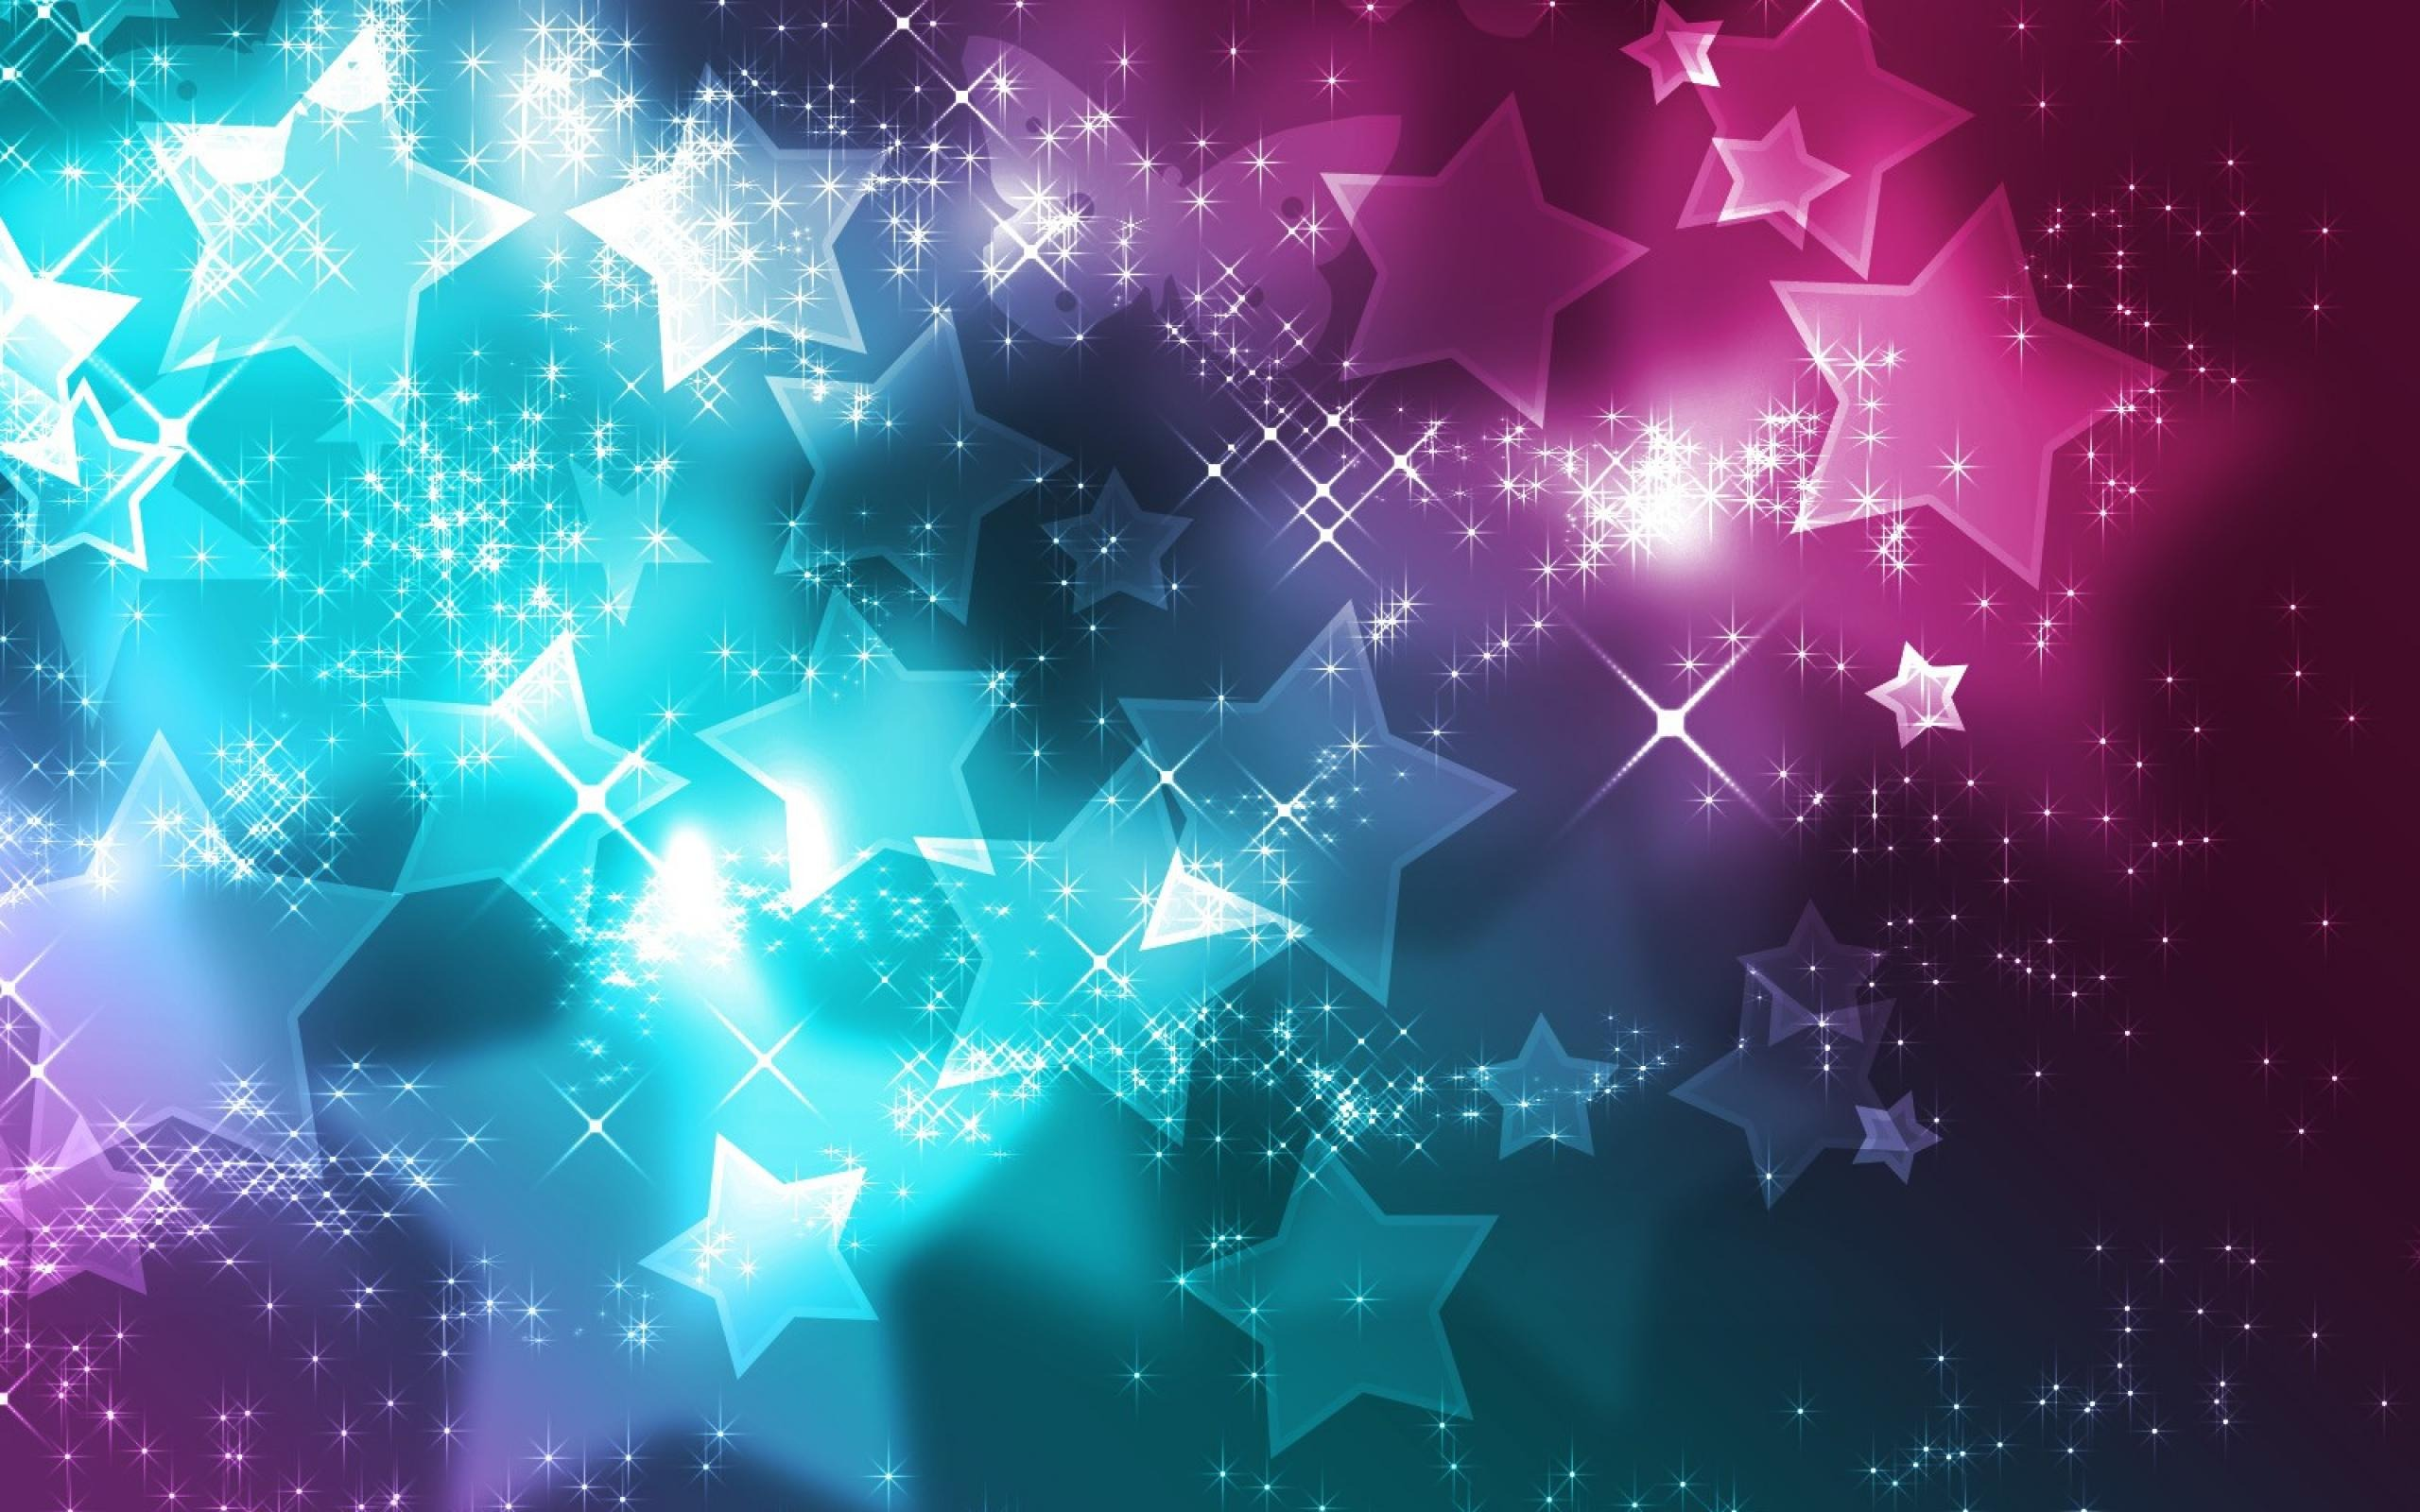 star-abstract design wallpaper preview | 10wallpaper